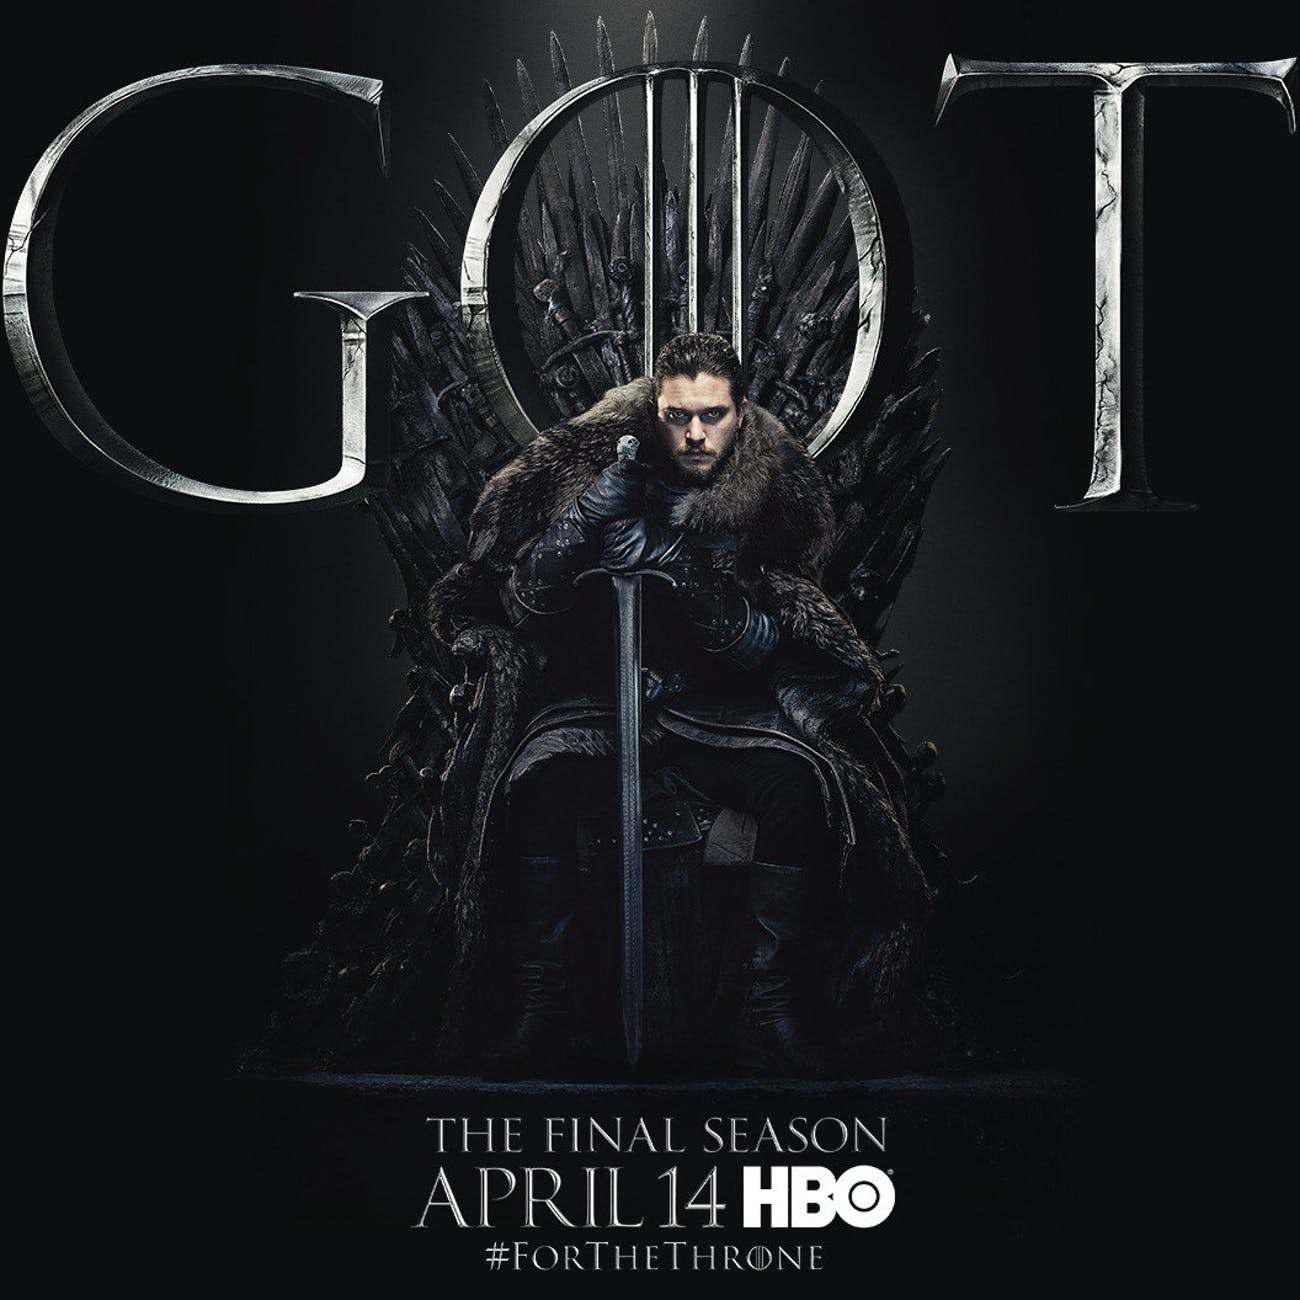 game of thrones season 8 poster jon snow